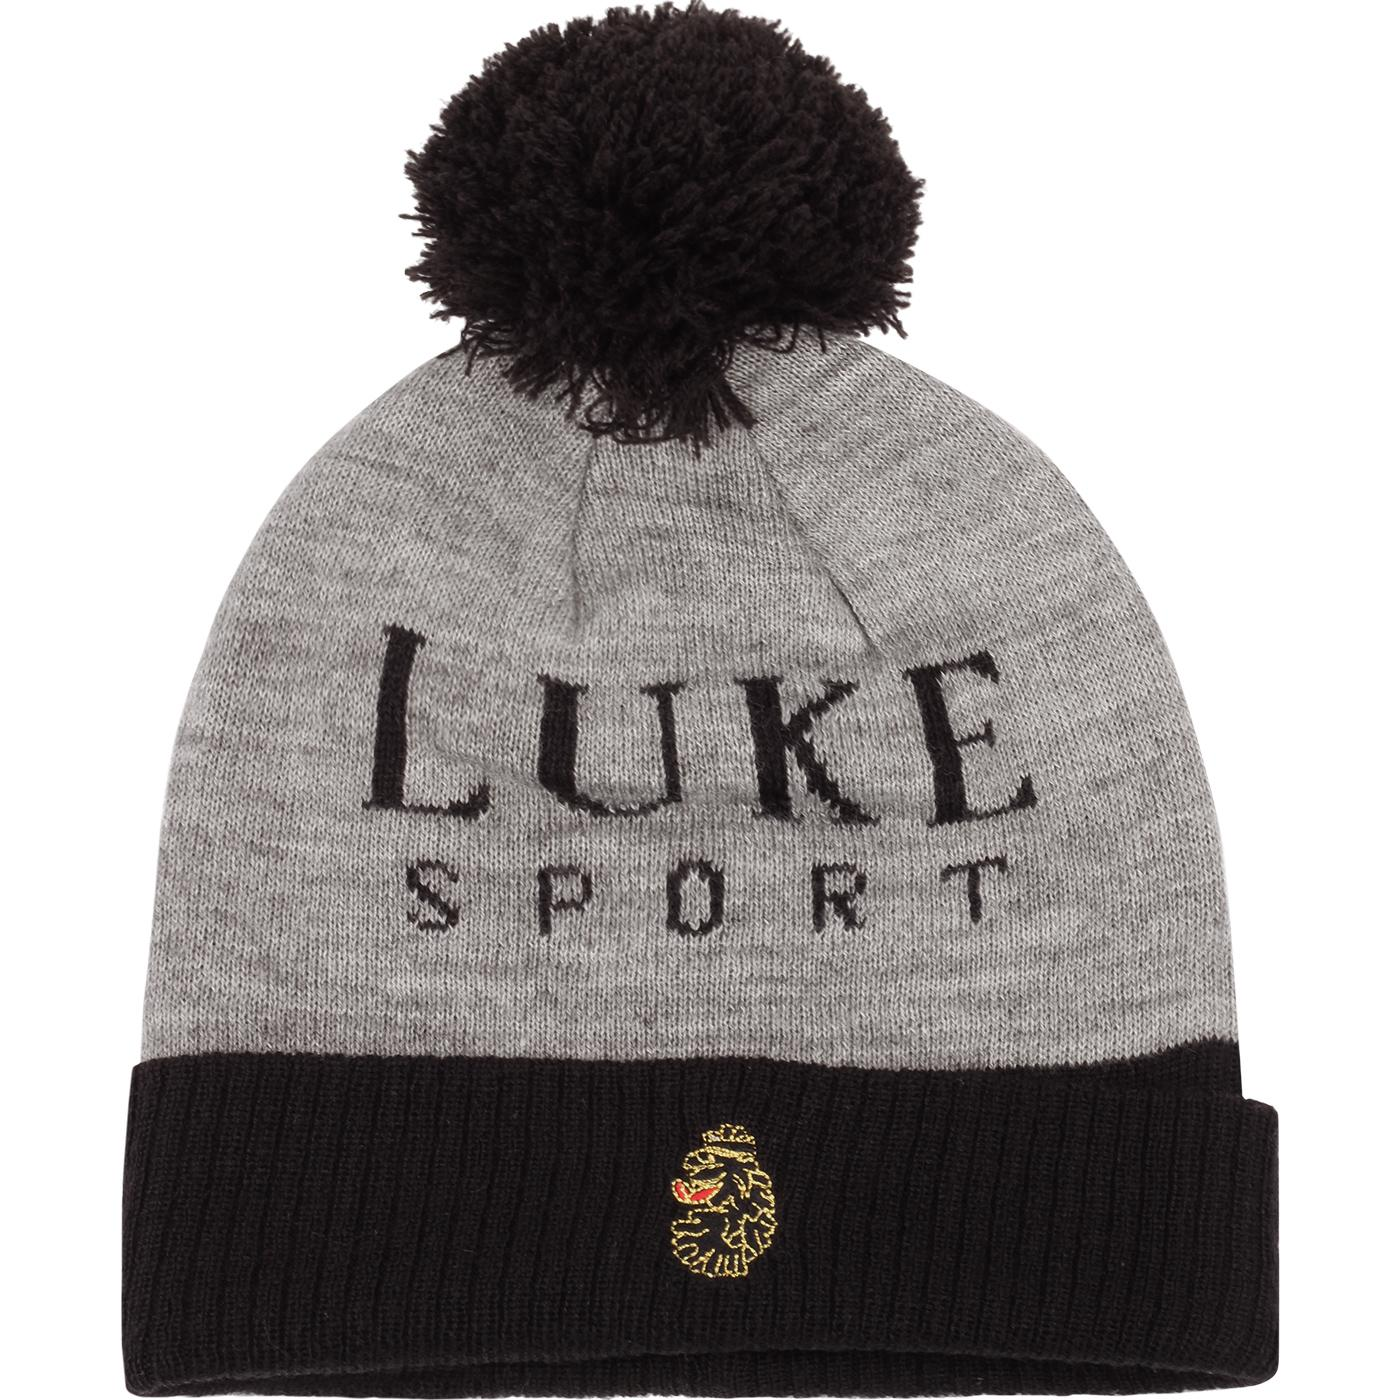 Flack LUKE Retro Two Tone Bobble Hat (Charcoal)